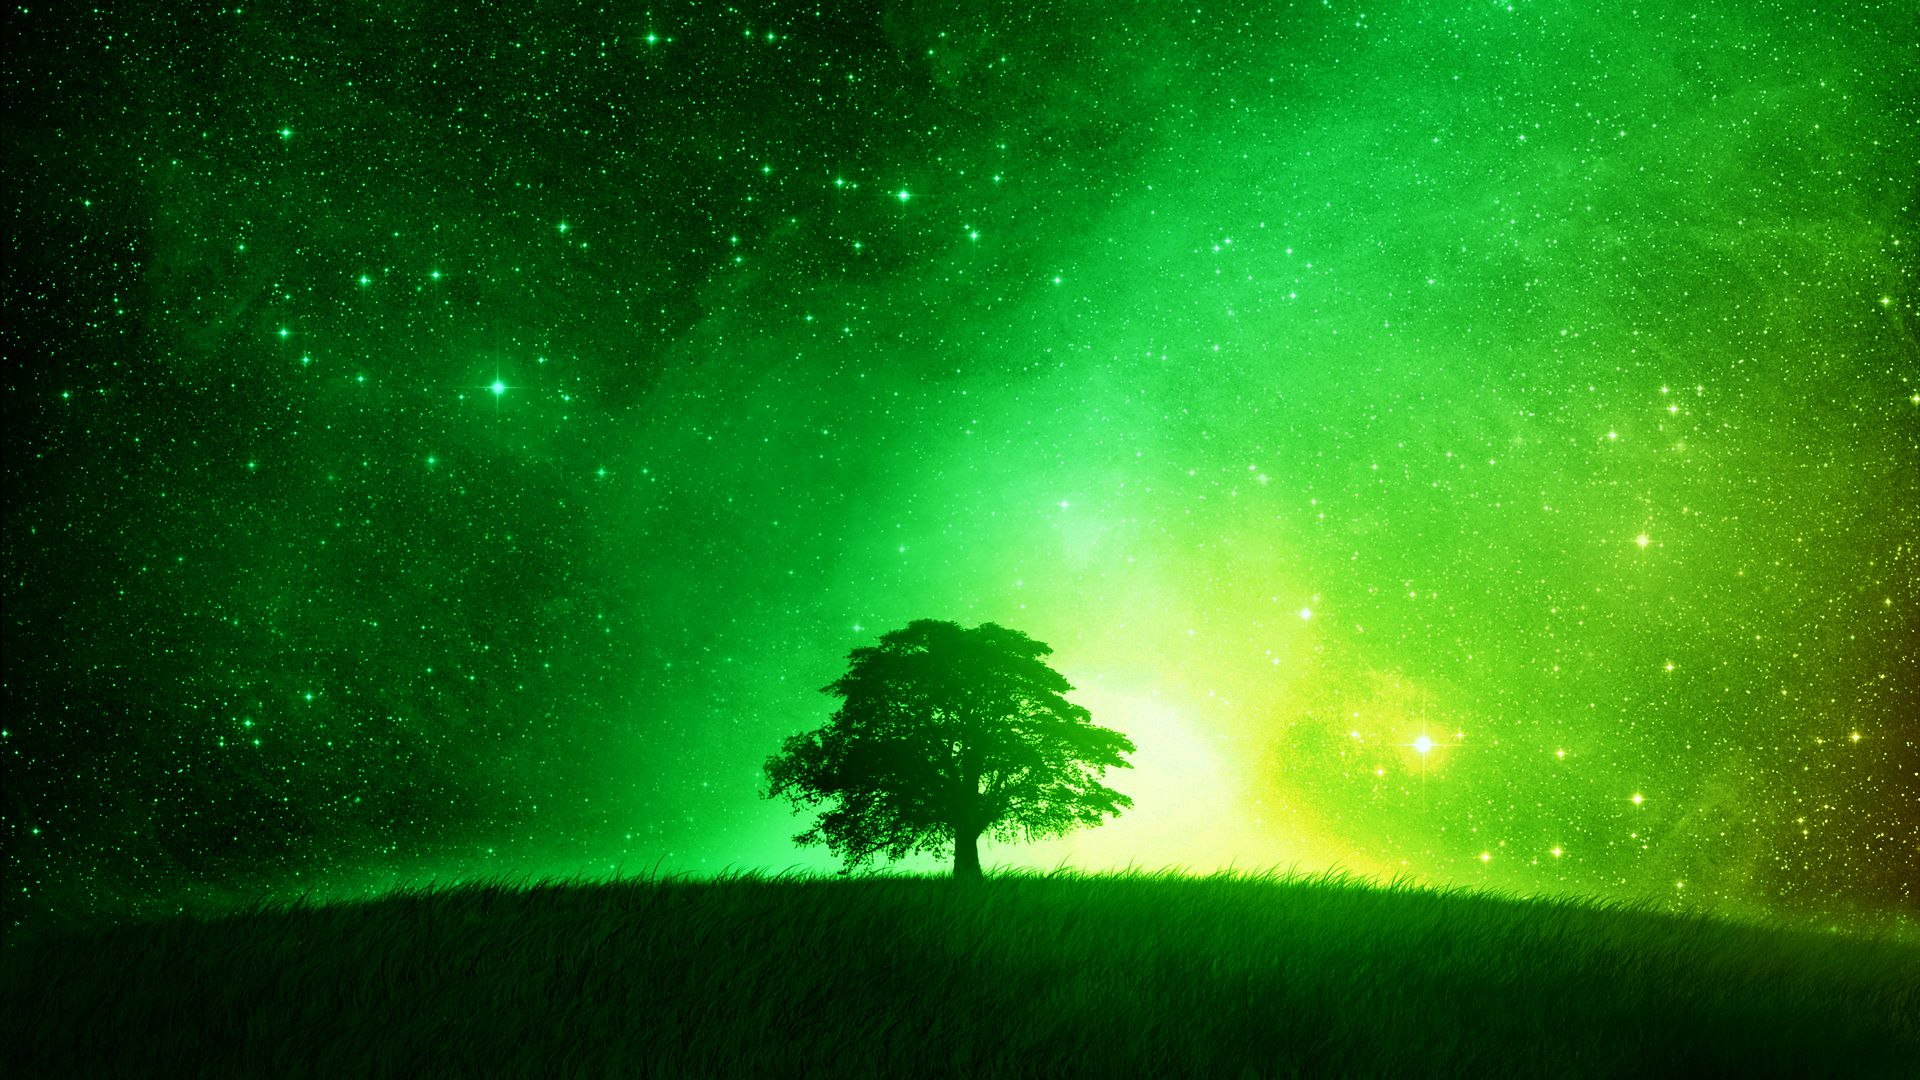 Glowing Green Tree Desktop Background Aesthetic Wallpapers Green Photo Screensaver Pictures